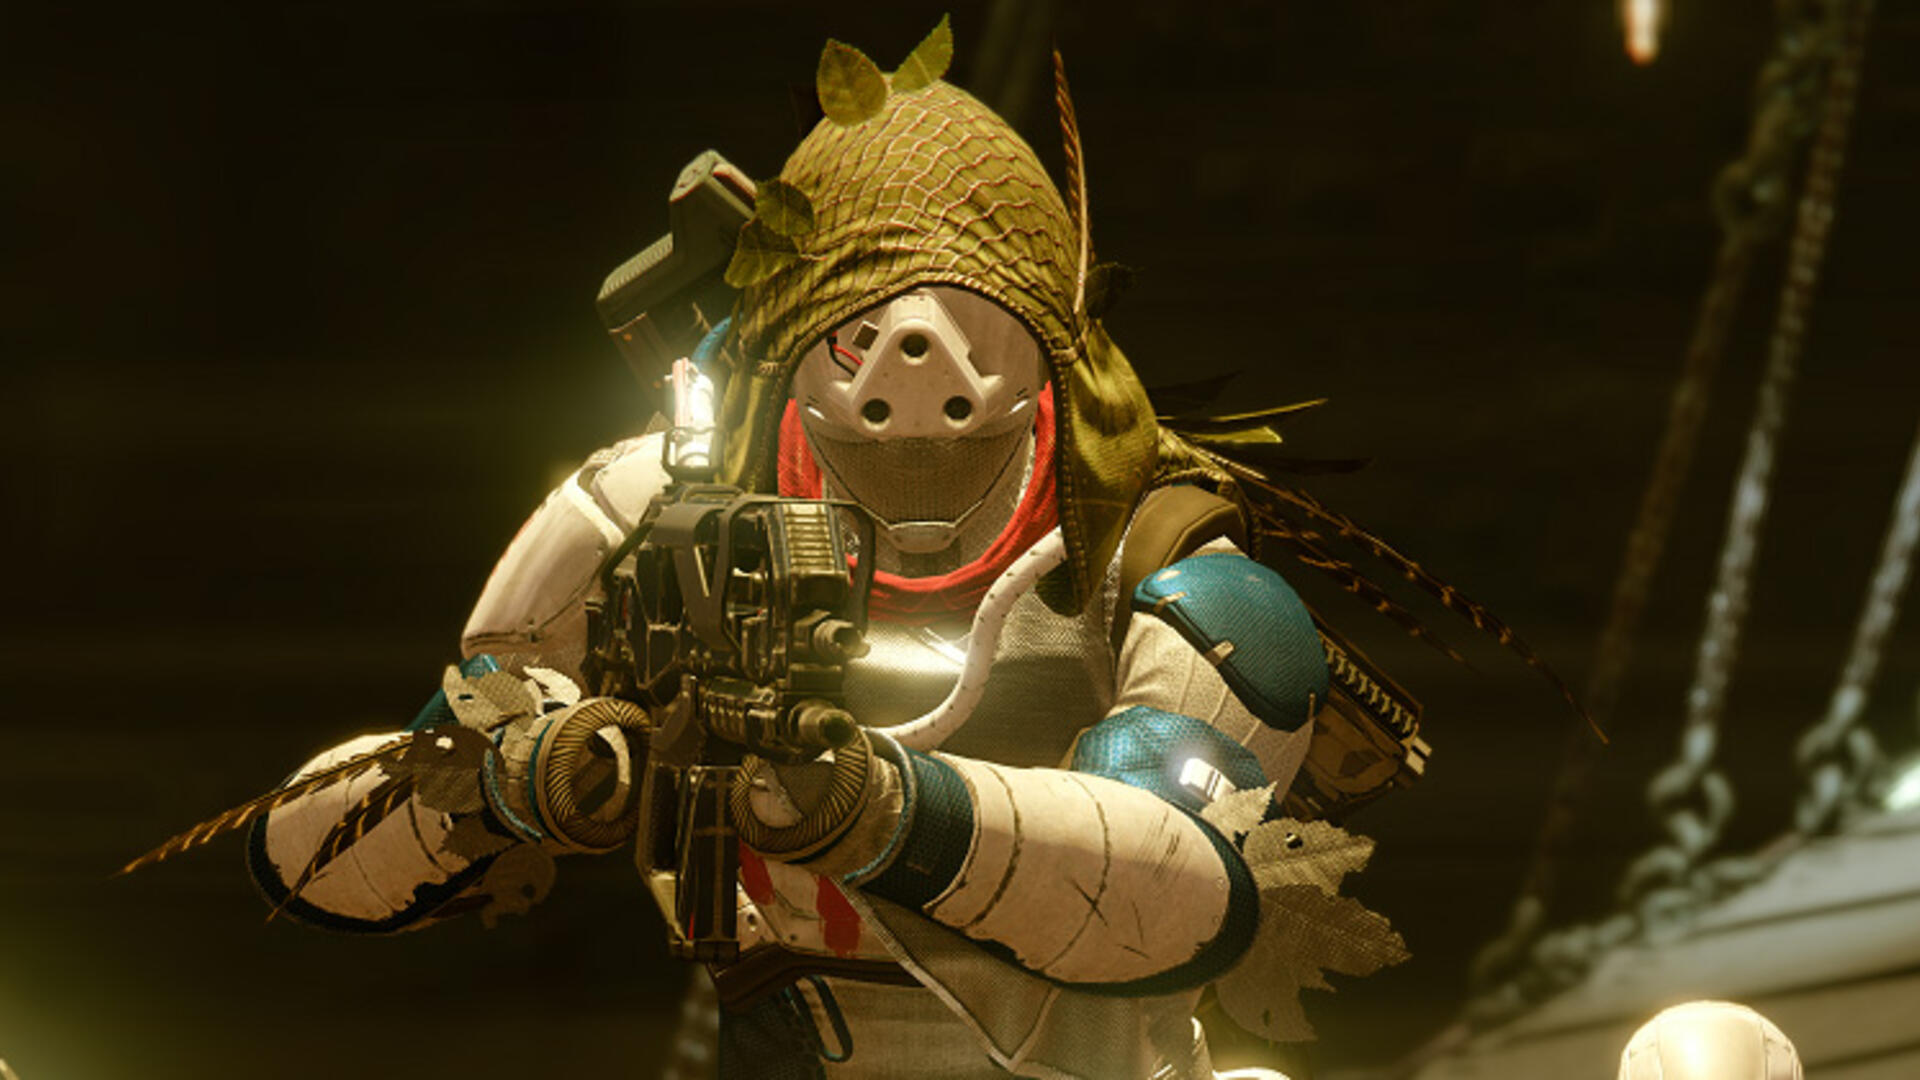 Destiny: The Taken King Calcified Fragment Locations